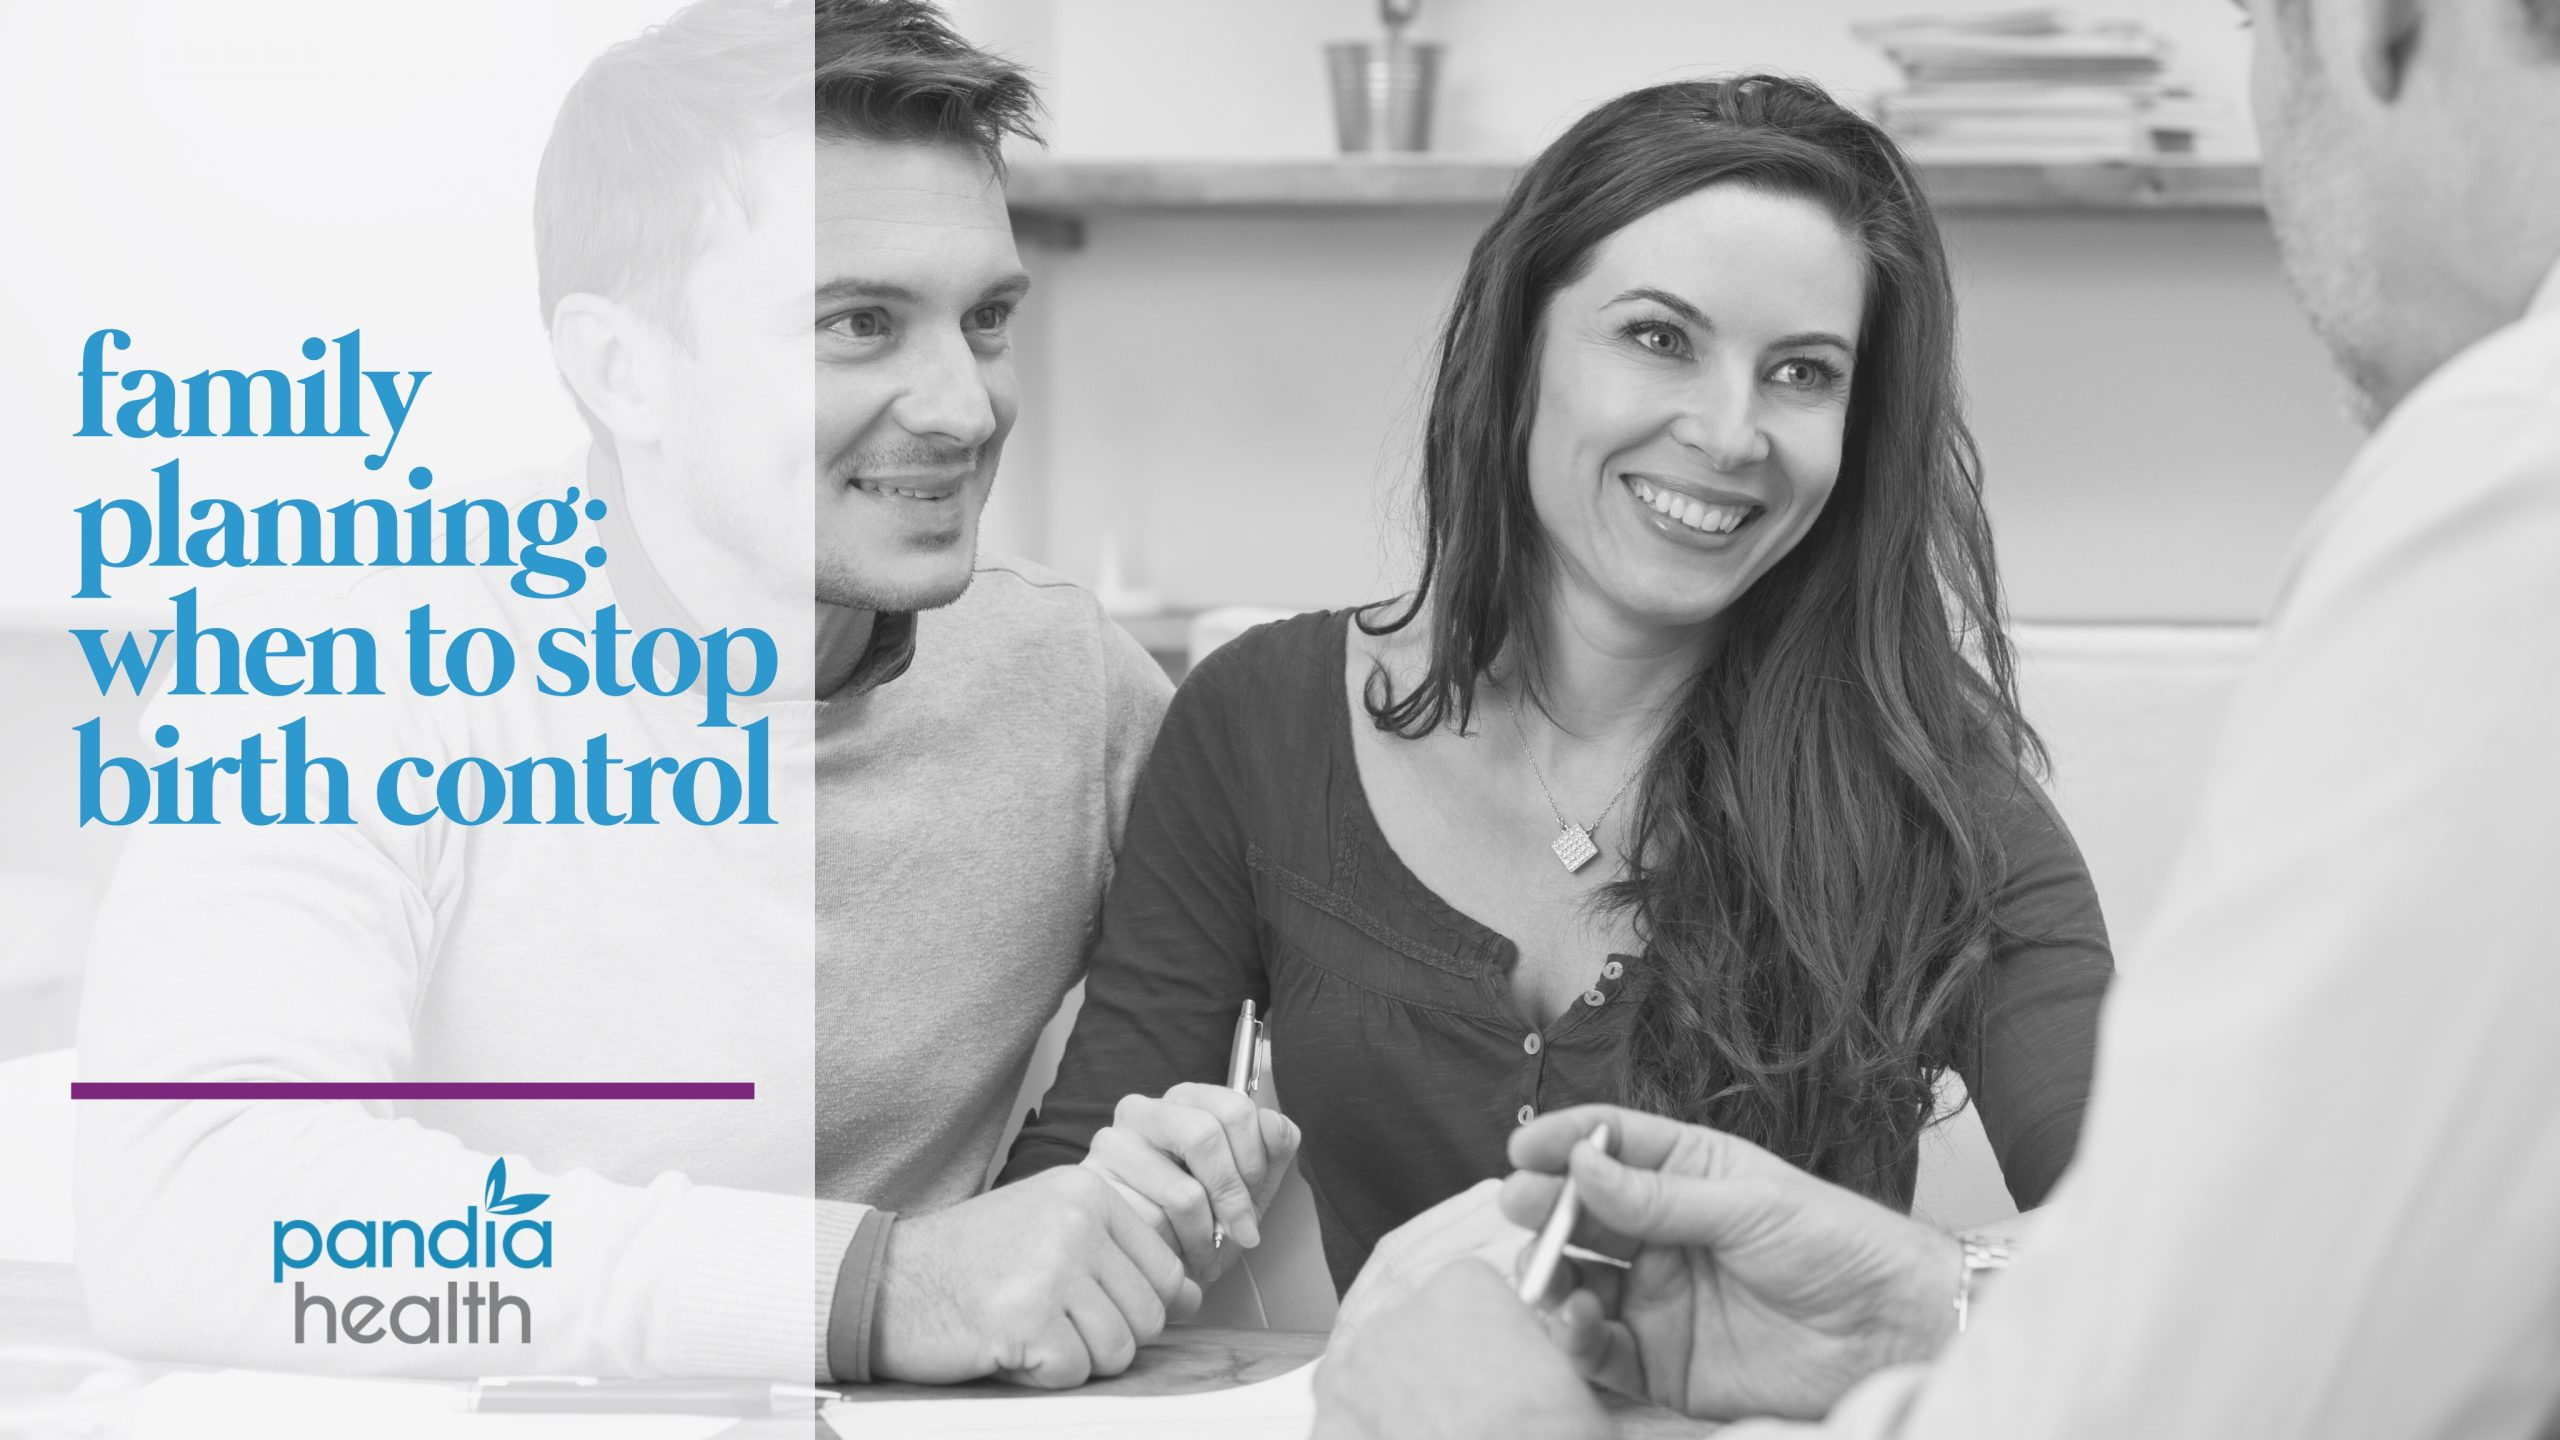 Family planning: when to stop birth control